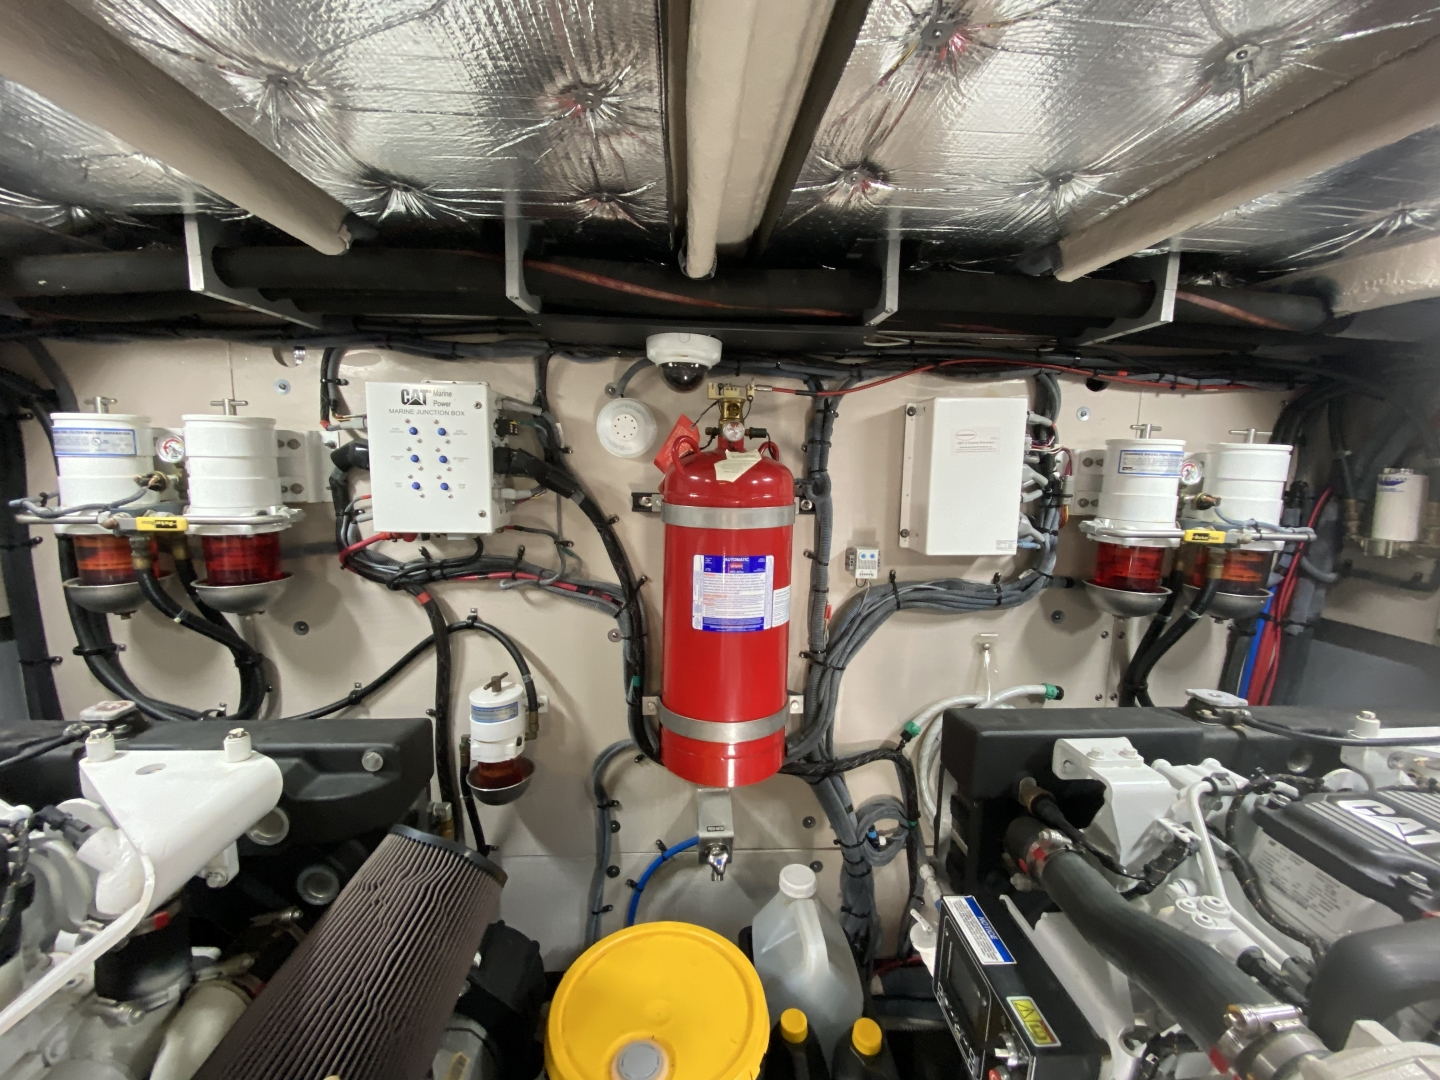 Sea Ray-L650 Express 2016-Cozy Fort Lauderdale-Florida-United States-2016 Sea Ray L650 Engine Room-1367682 | Thumbnail